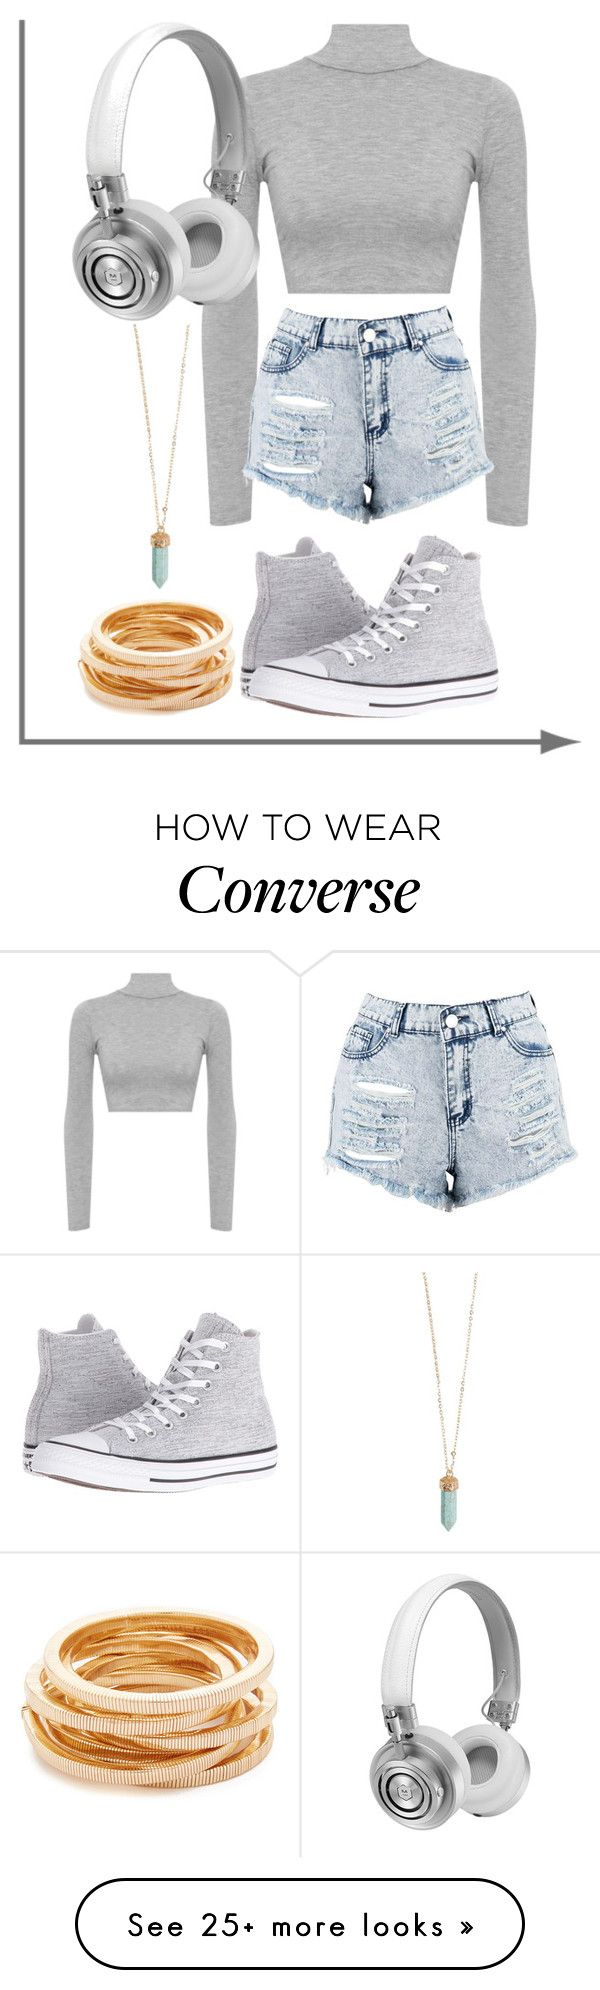 """""""Everythin' I See Is Grey"""" by emmalineavery on Polyvore featuring WearAll, Boohoo, Master & Dynamic, Converse and Kenneth Jay Lane"""